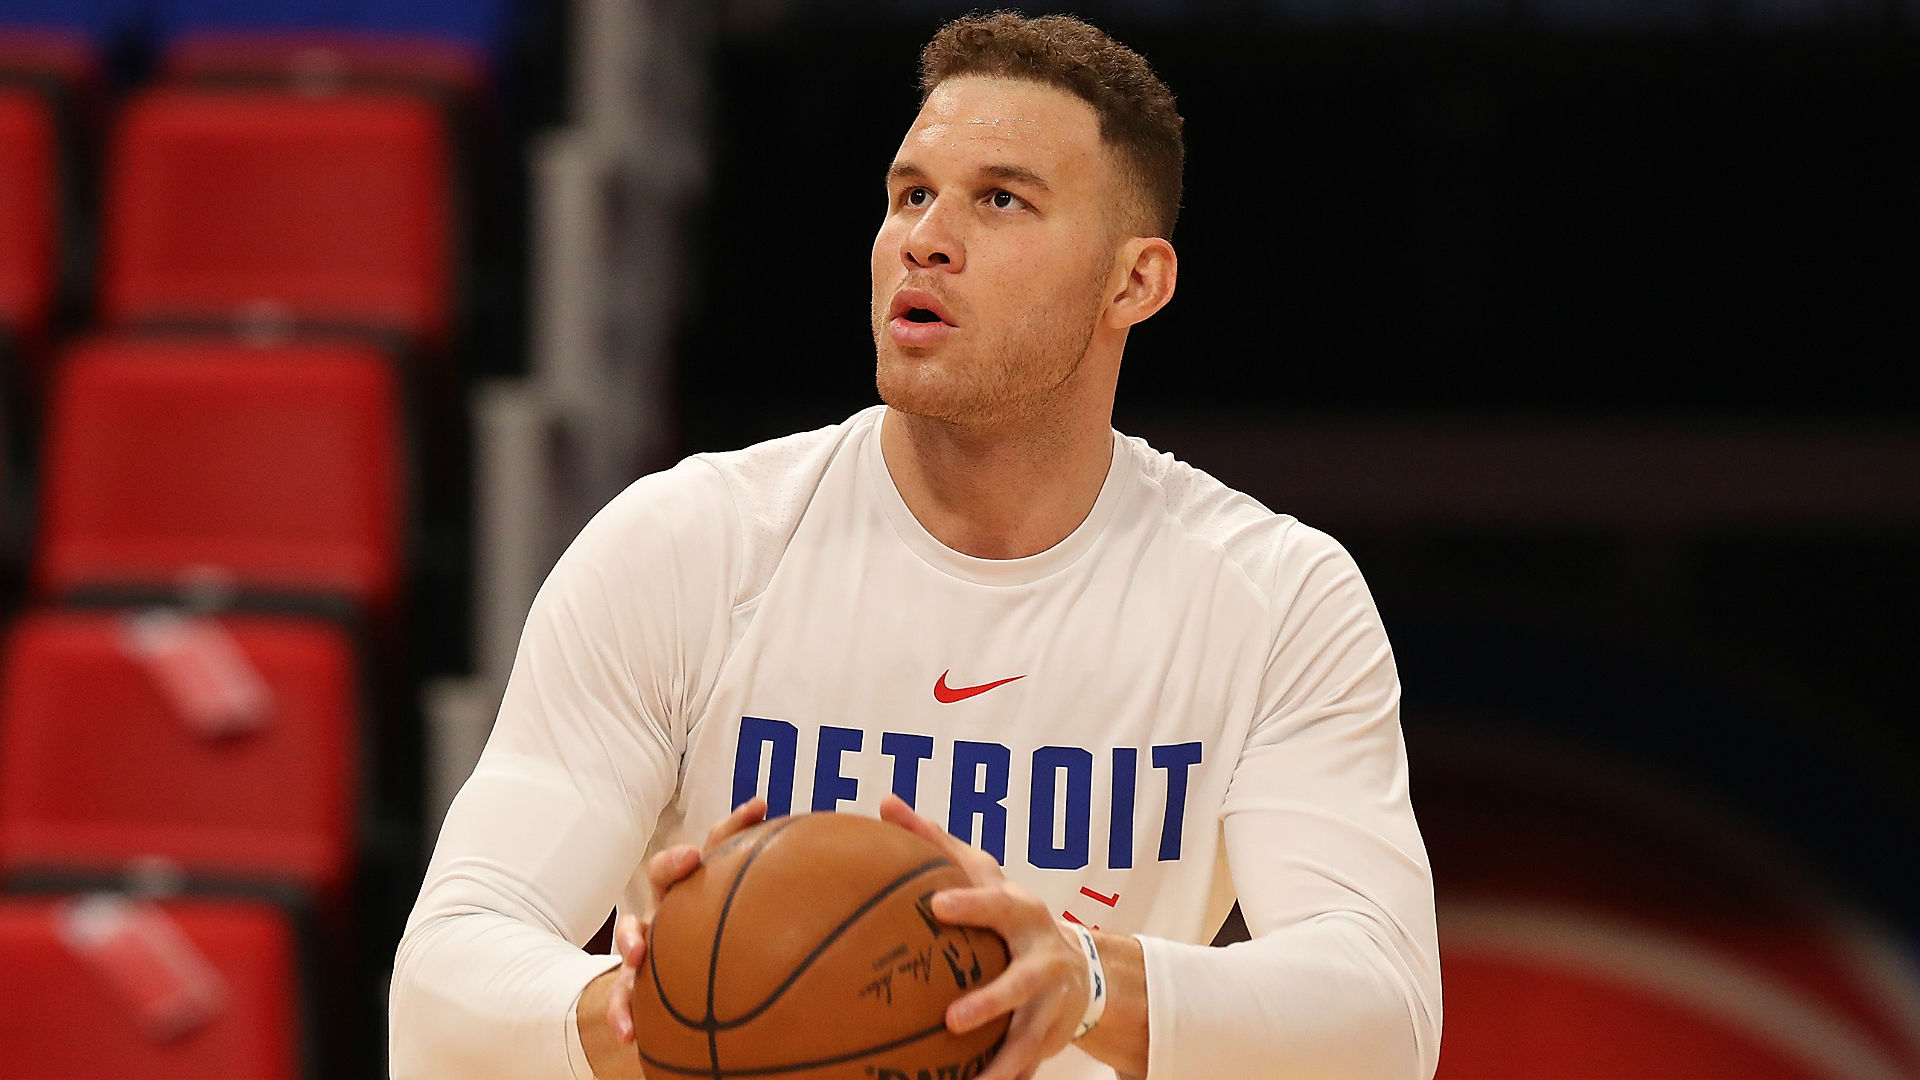 Blake Griffin ordered to pay $258K a month in child support